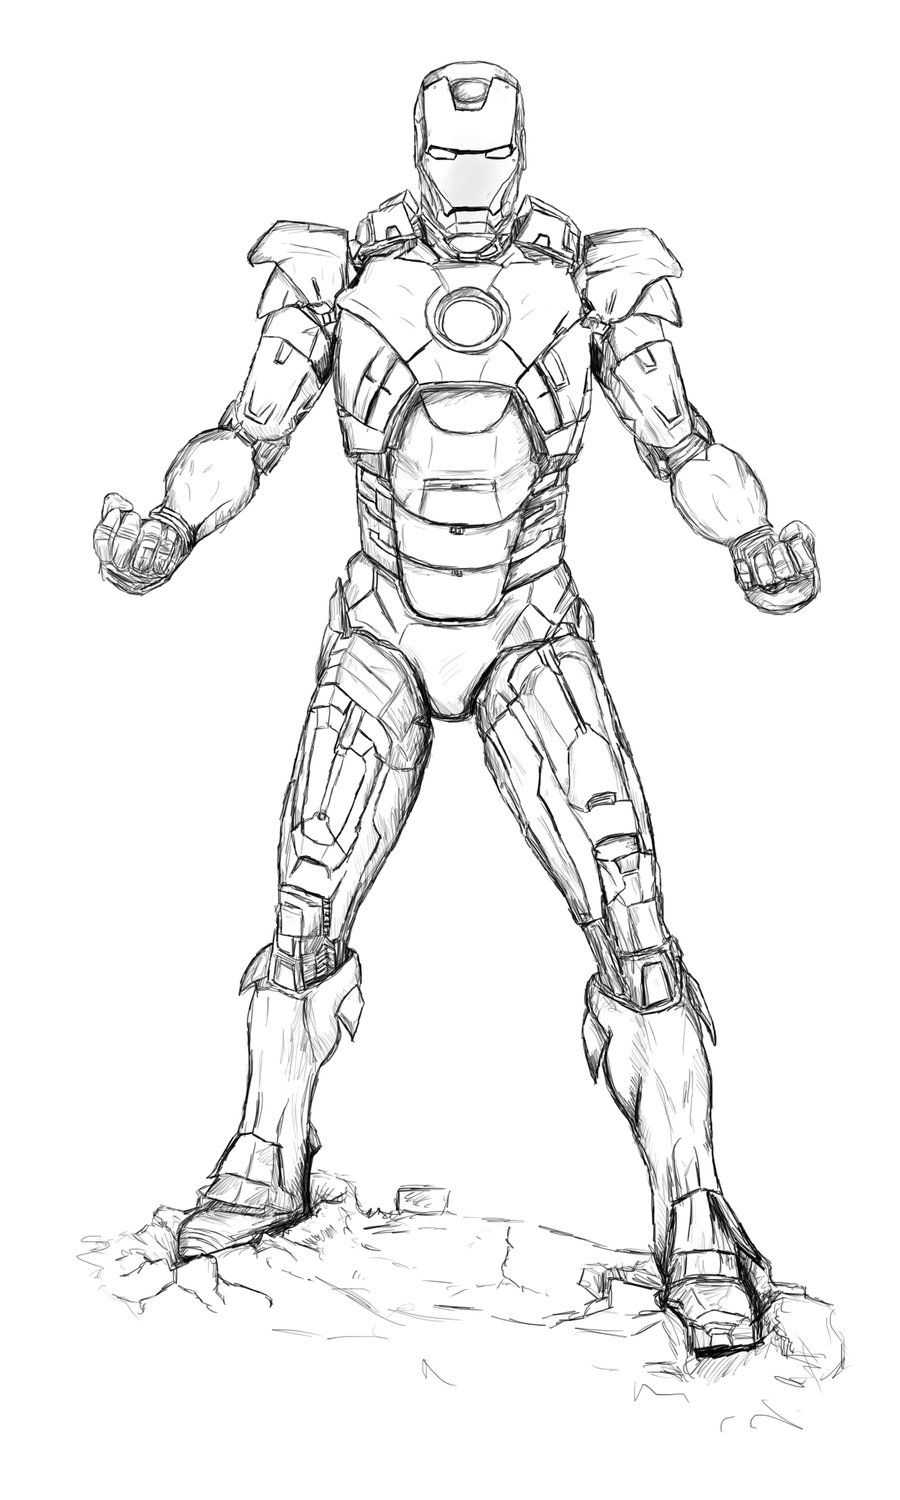 Iron man online coloring games - Printable Iron Man Coloring Pages For Fun